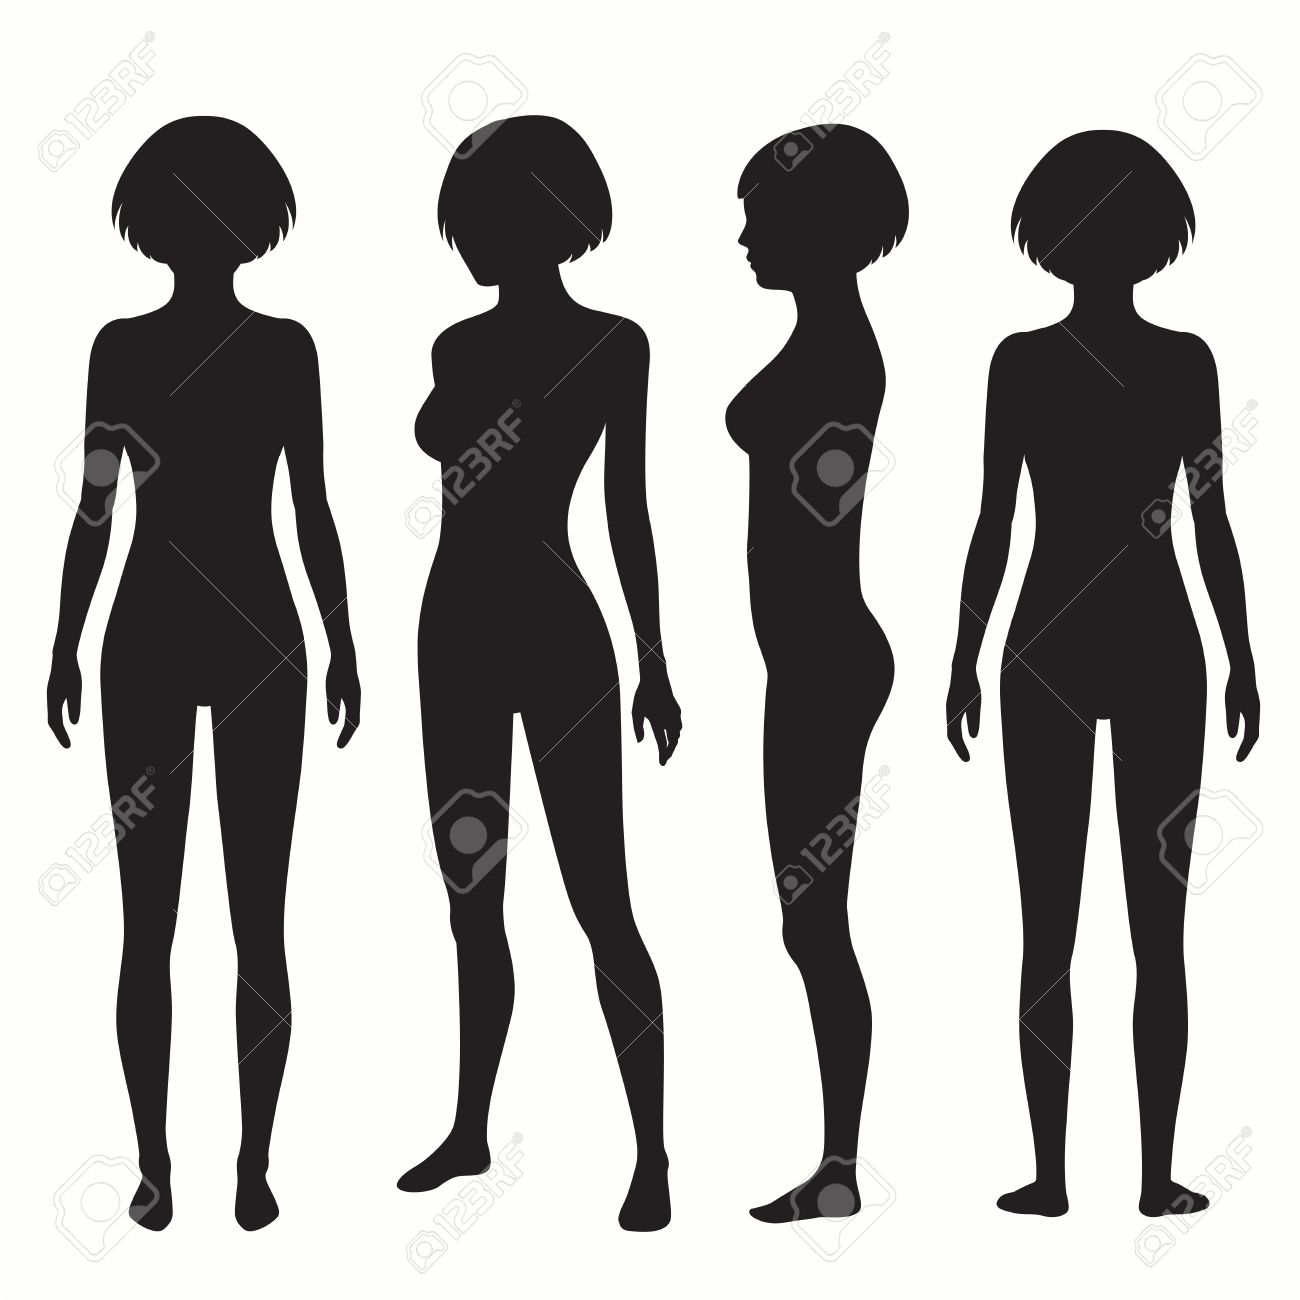 Human body anatomy front back side view vector woman human body anatomy front back side view vector woman illustration stock vector ccuart Images